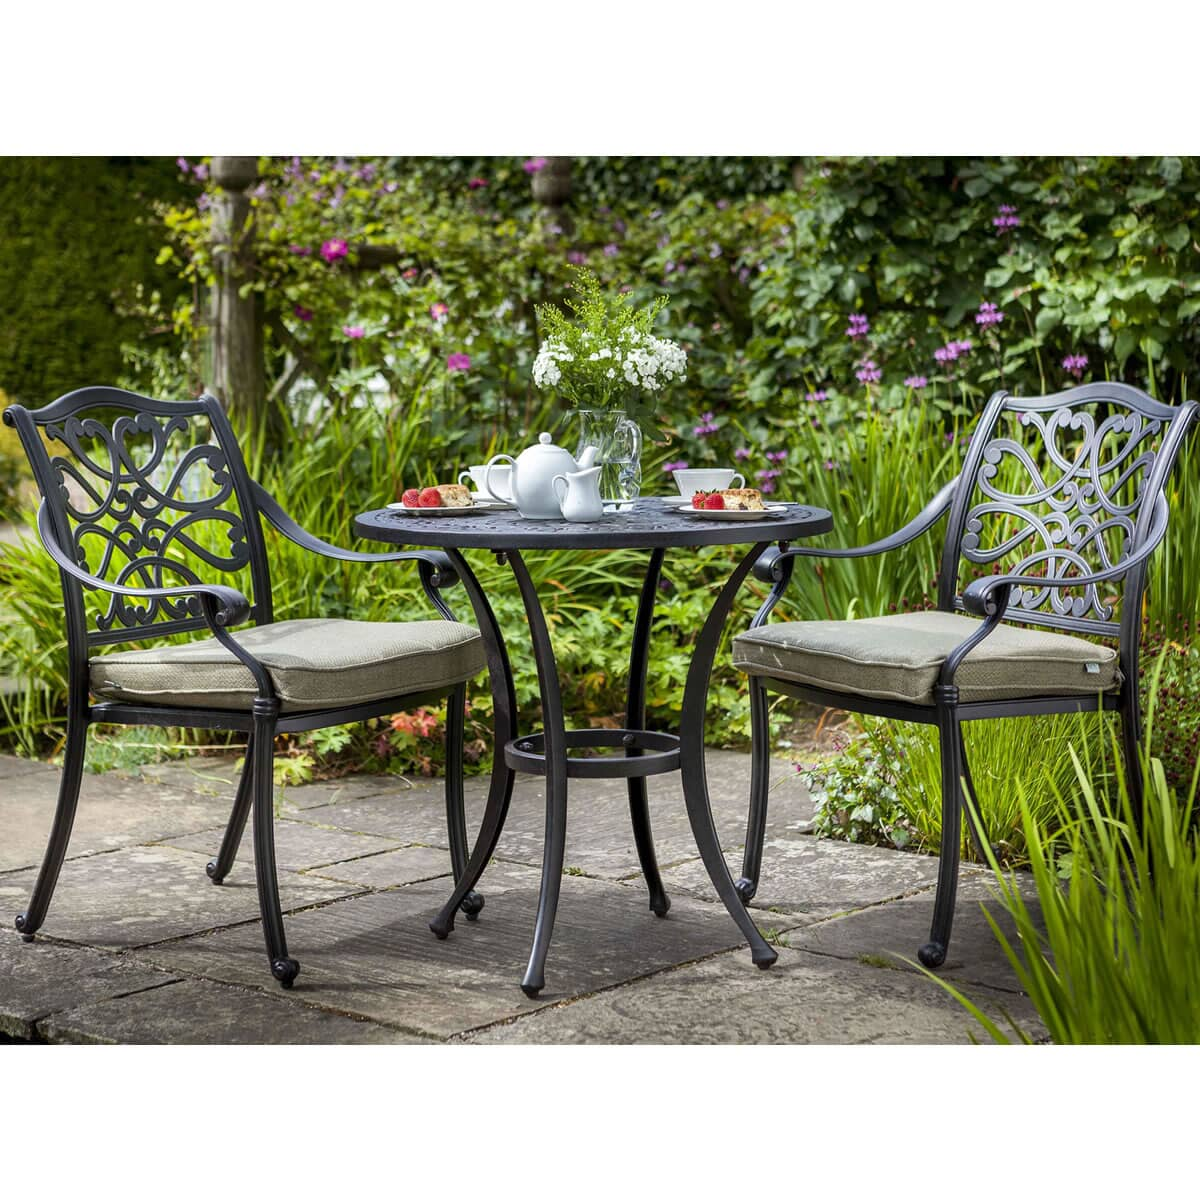 hartman capri bistro set bronze capribisset garden. Black Bedroom Furniture Sets. Home Design Ideas